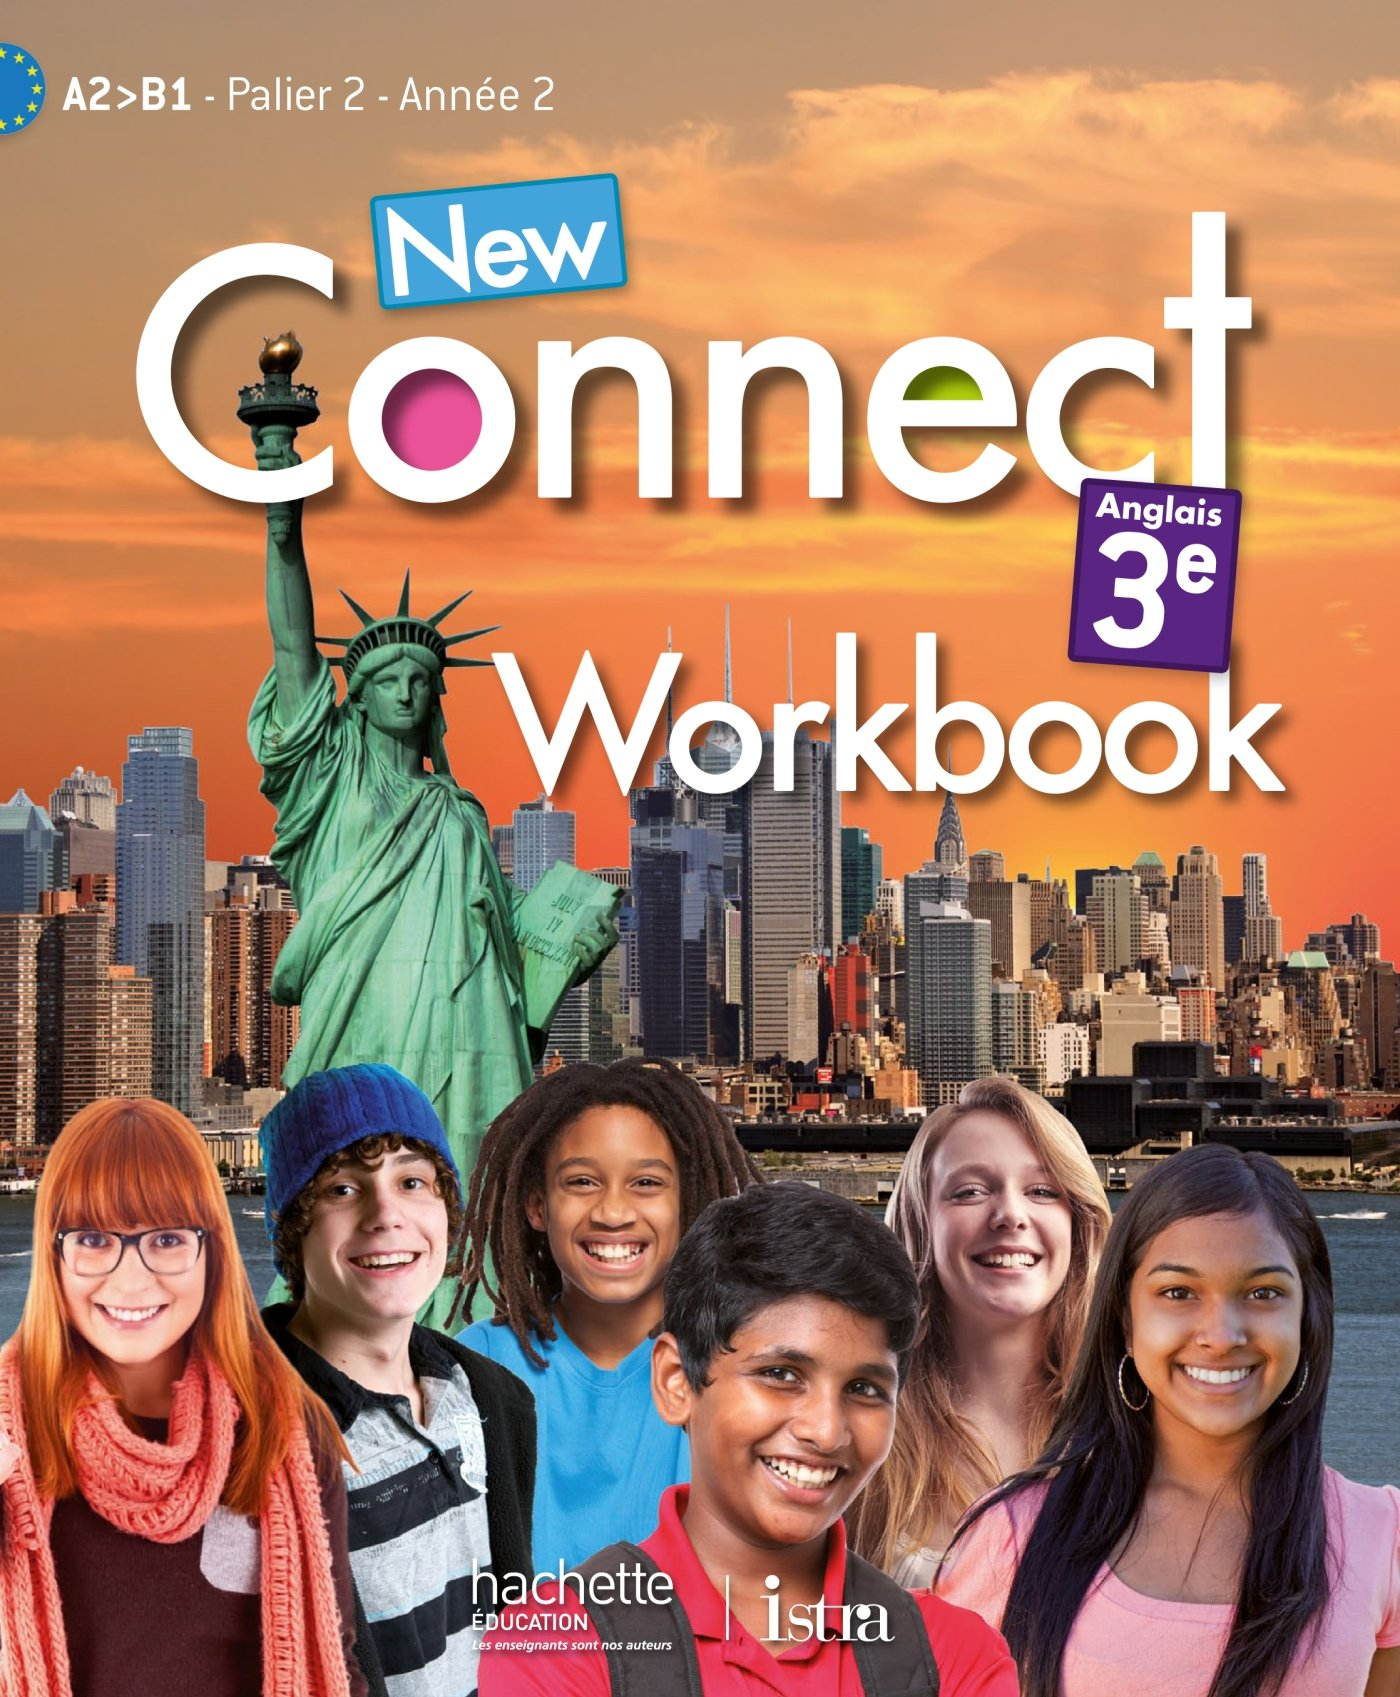 New Connect 3e Palier 2 Annee 2 Anglais Workbook